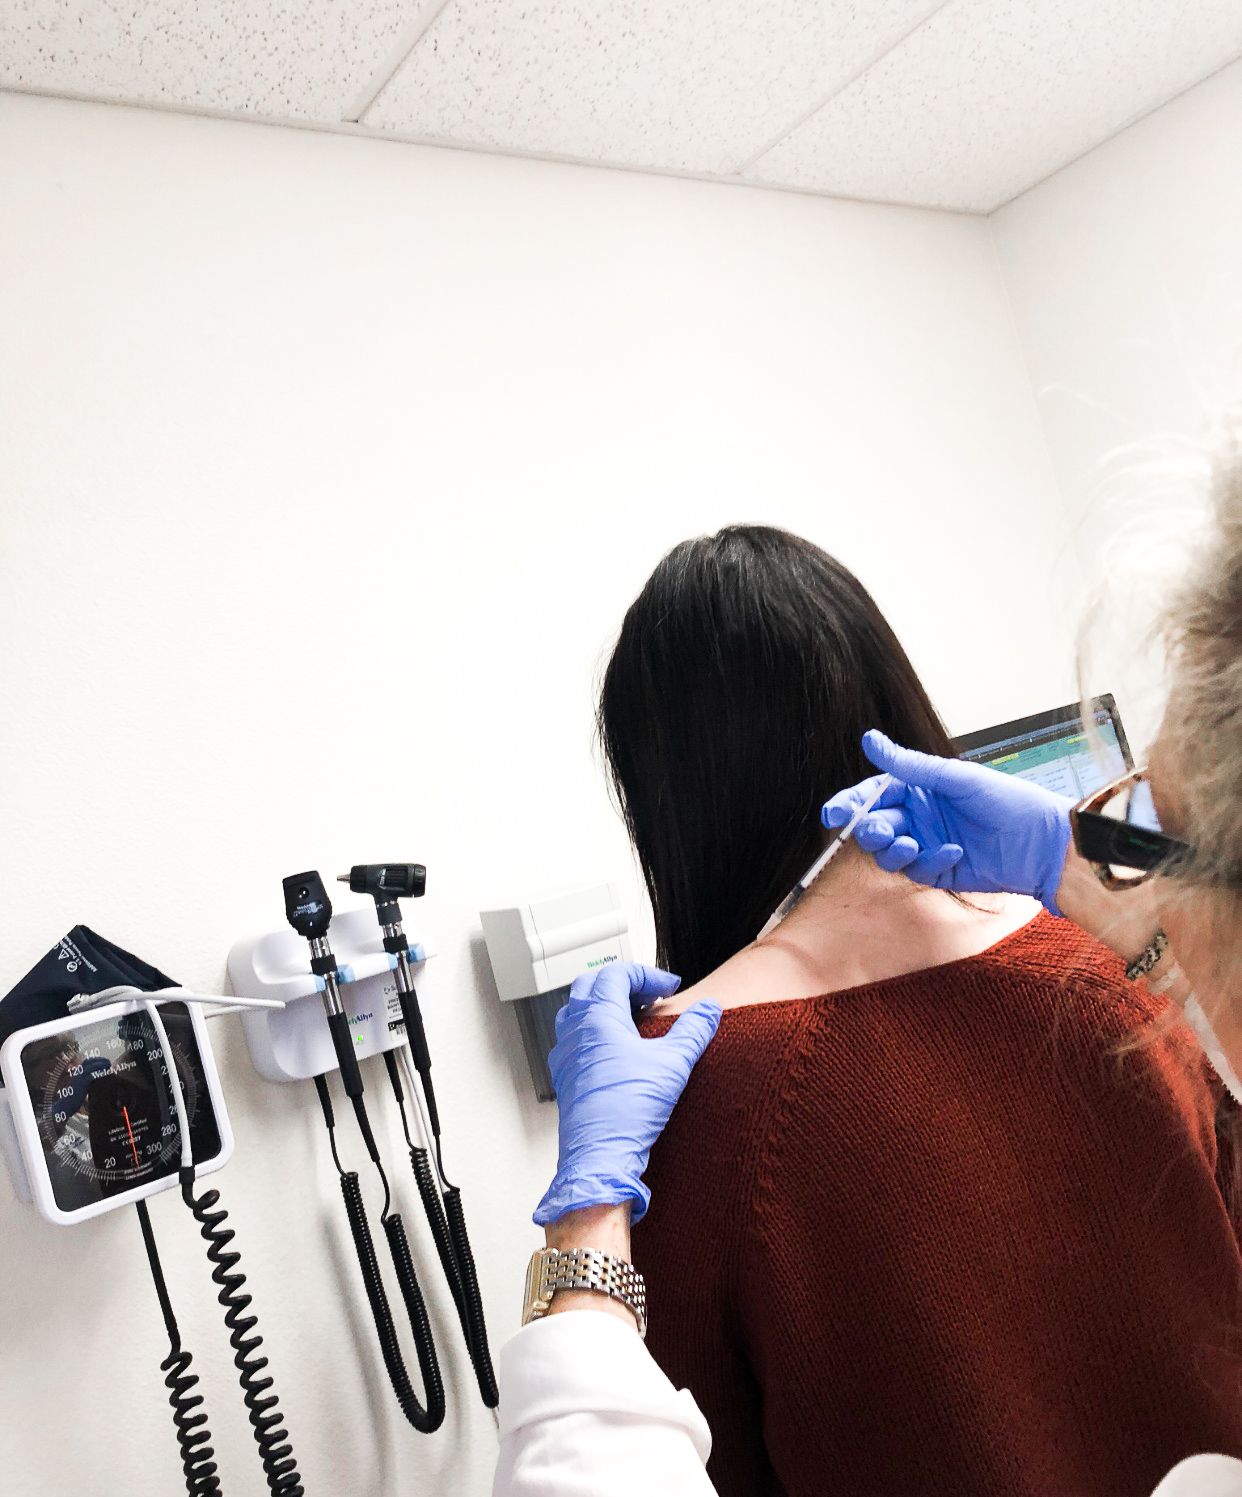 Botox injections for migraines